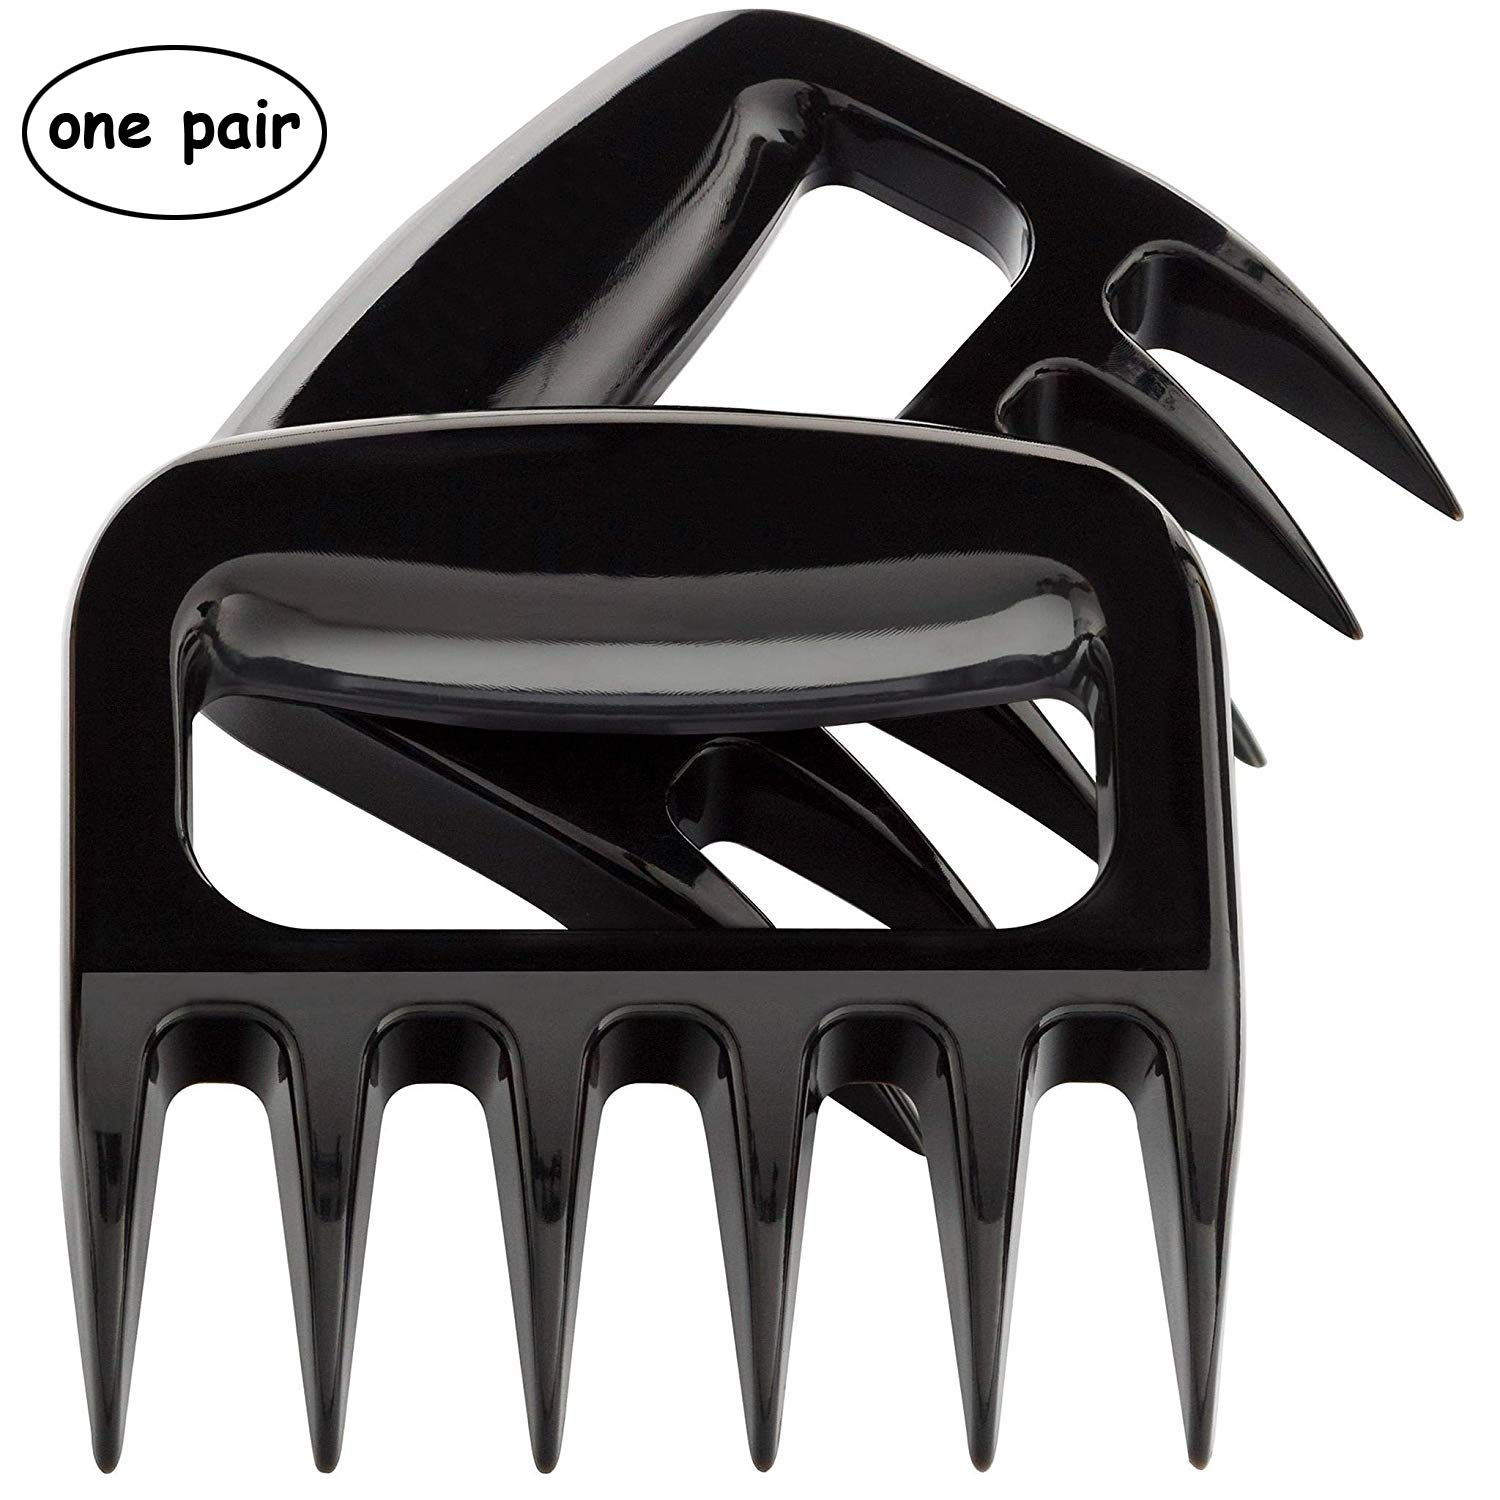 Blue Stardustt BBQ Meat Claws - Strongest BBQ Meat Forks - Shredding Handling & Carving Food - Claw Handler Set for Pulling Brisket from Grill Smoker or Slow Cooker, Two Pack,Black